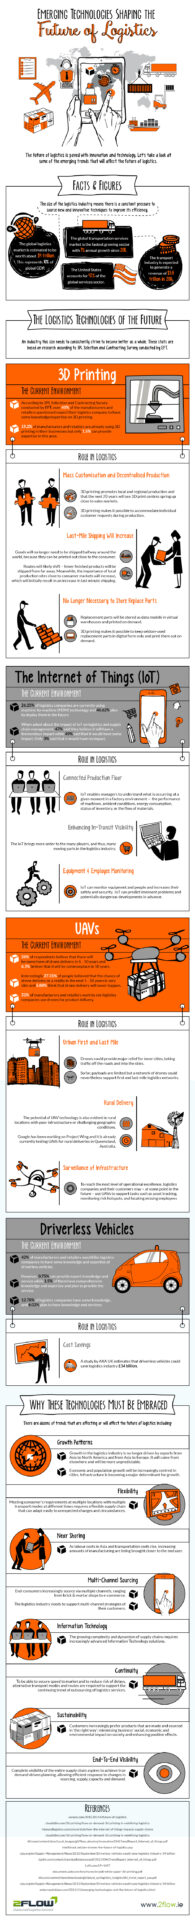 third-party logistics companies infographic